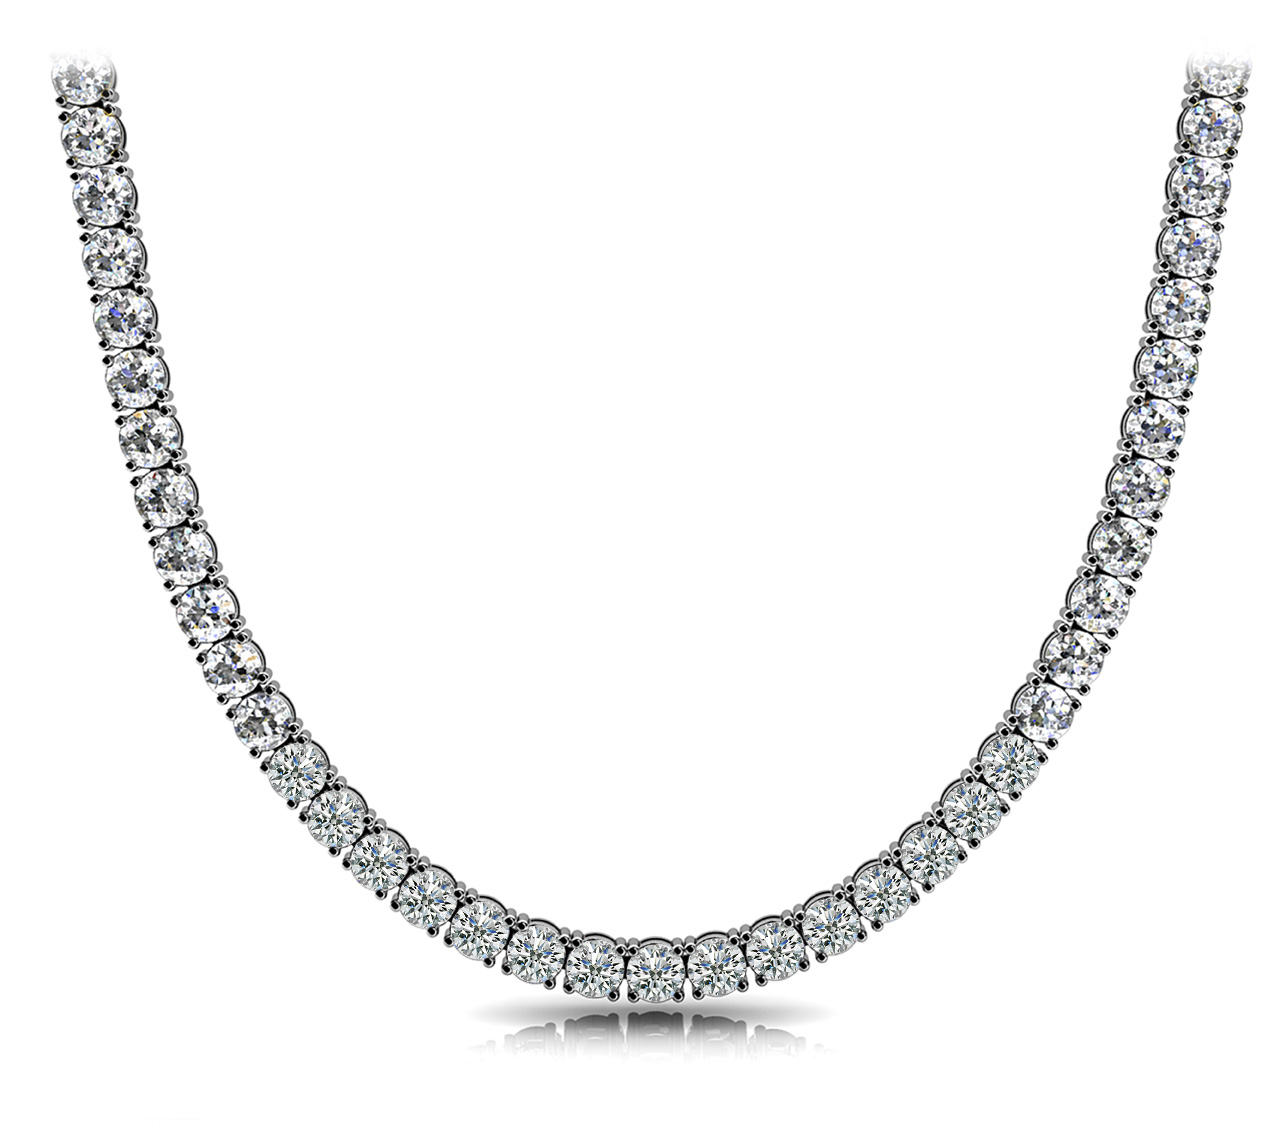 39.5 Carat Diamond Riviera Necklace GIA